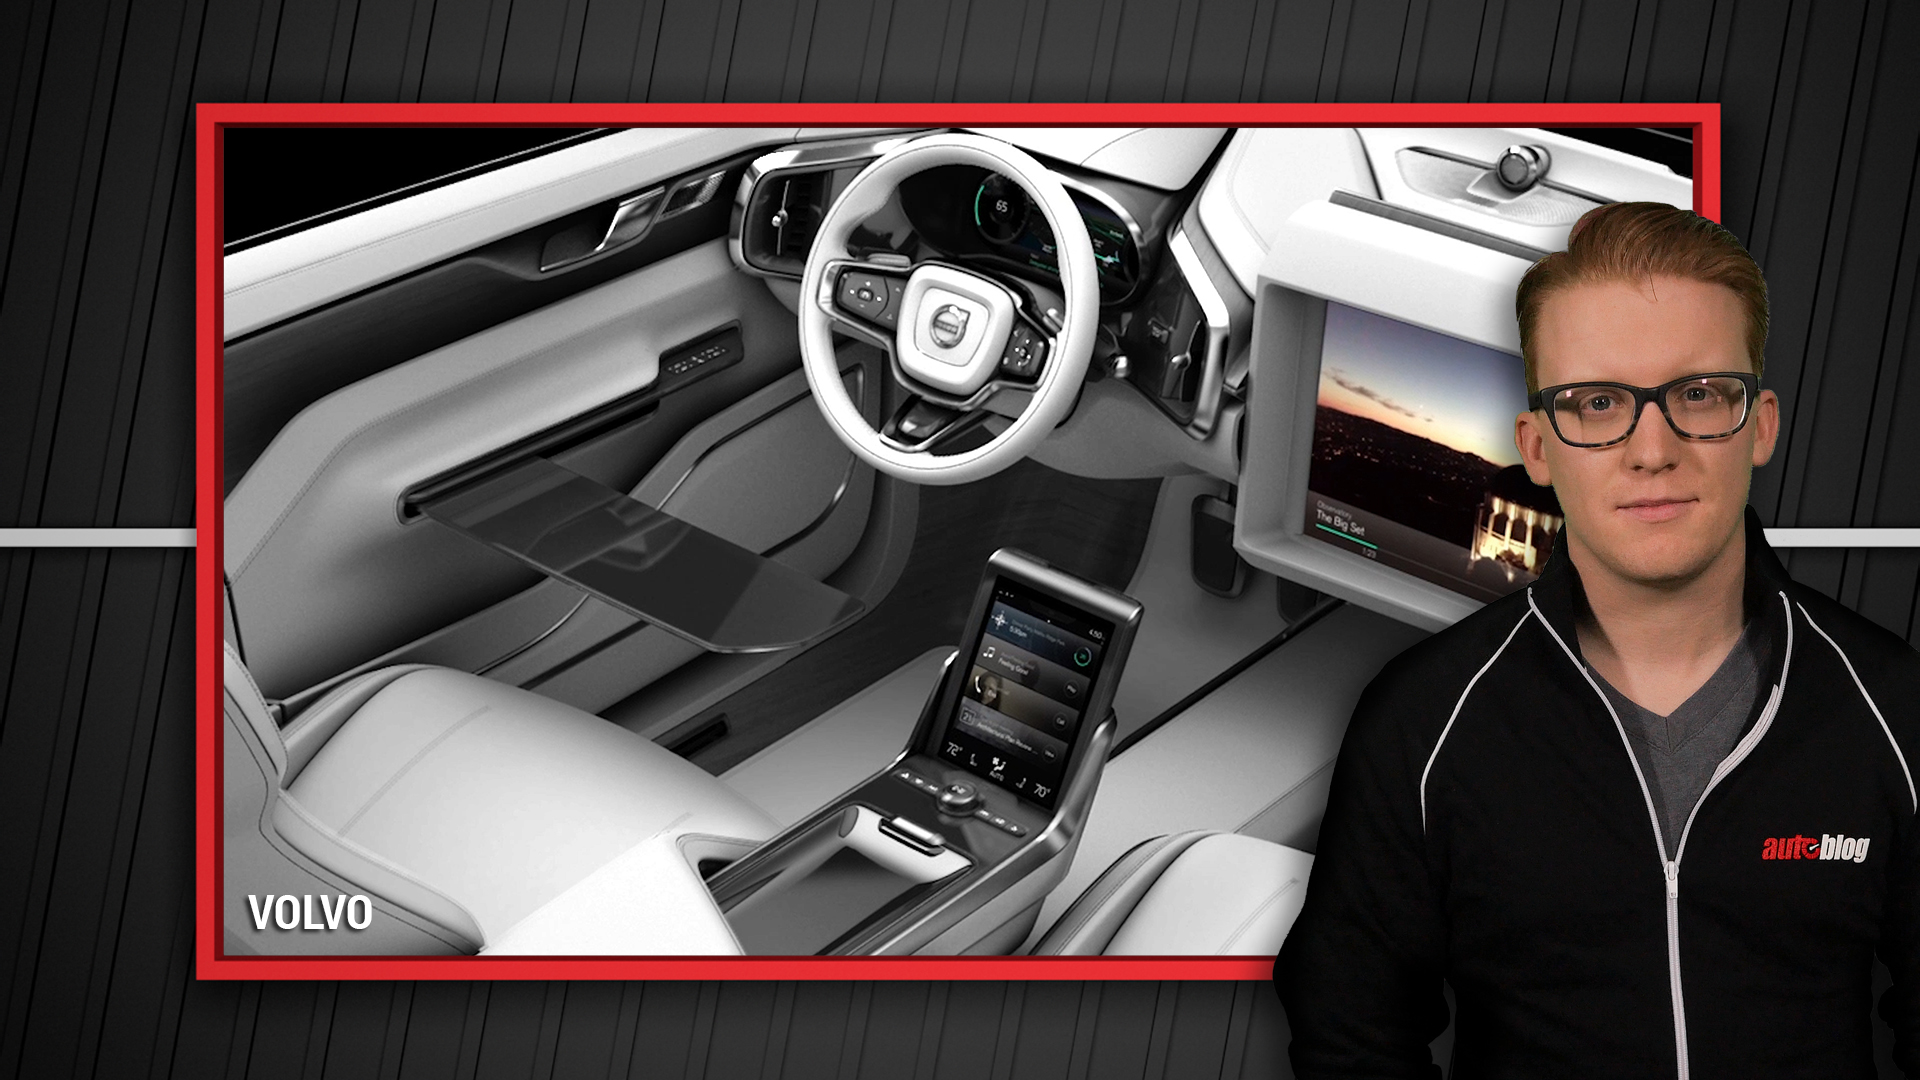 2015 Connected Car Expo and Volvo's Concept 26 Interior | Autoblog Minute